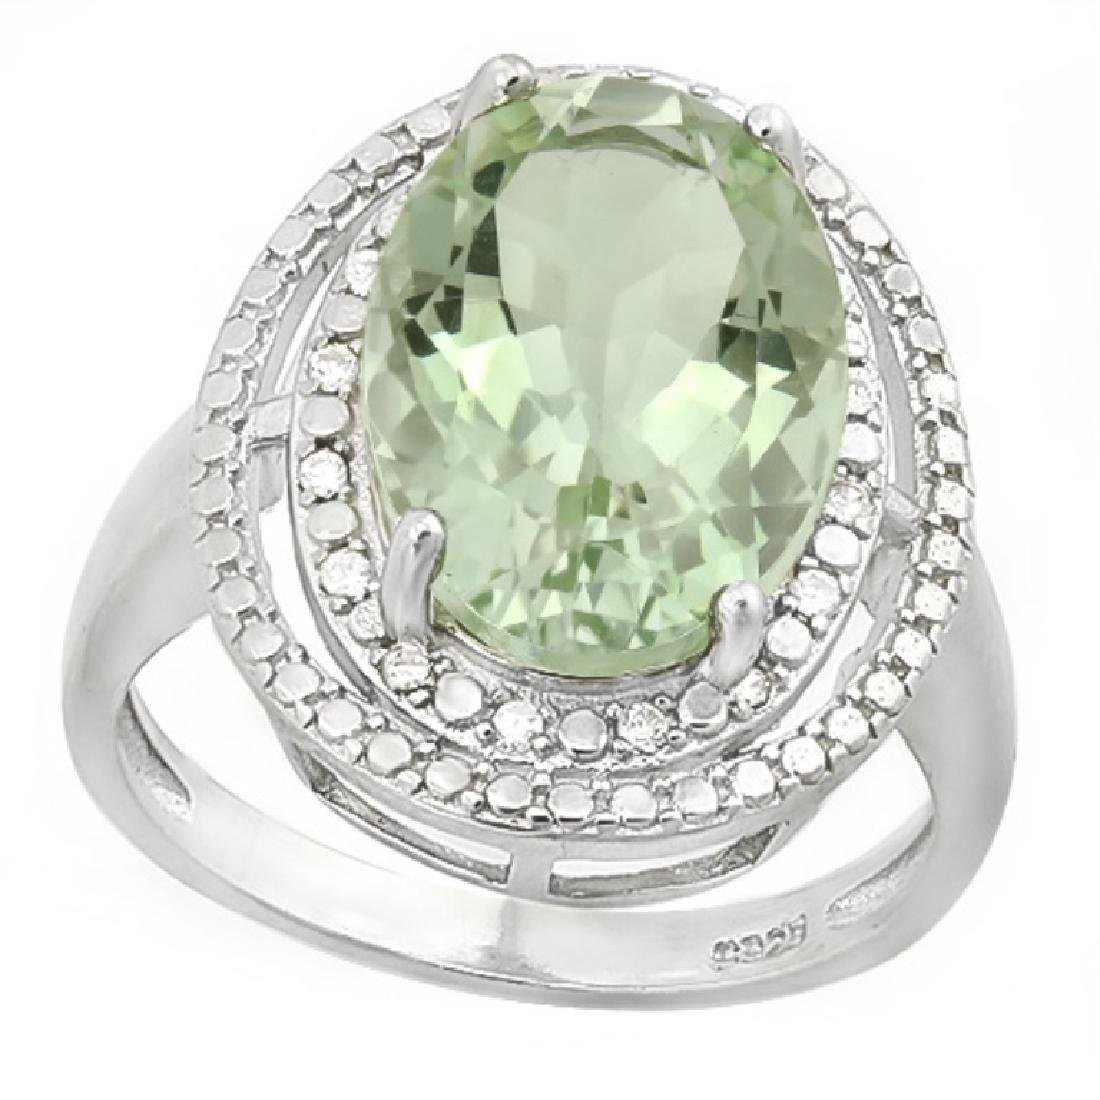 STUNNING 6CT FACETED GREEN TOPAZ/DIAMOND COCKTAILR